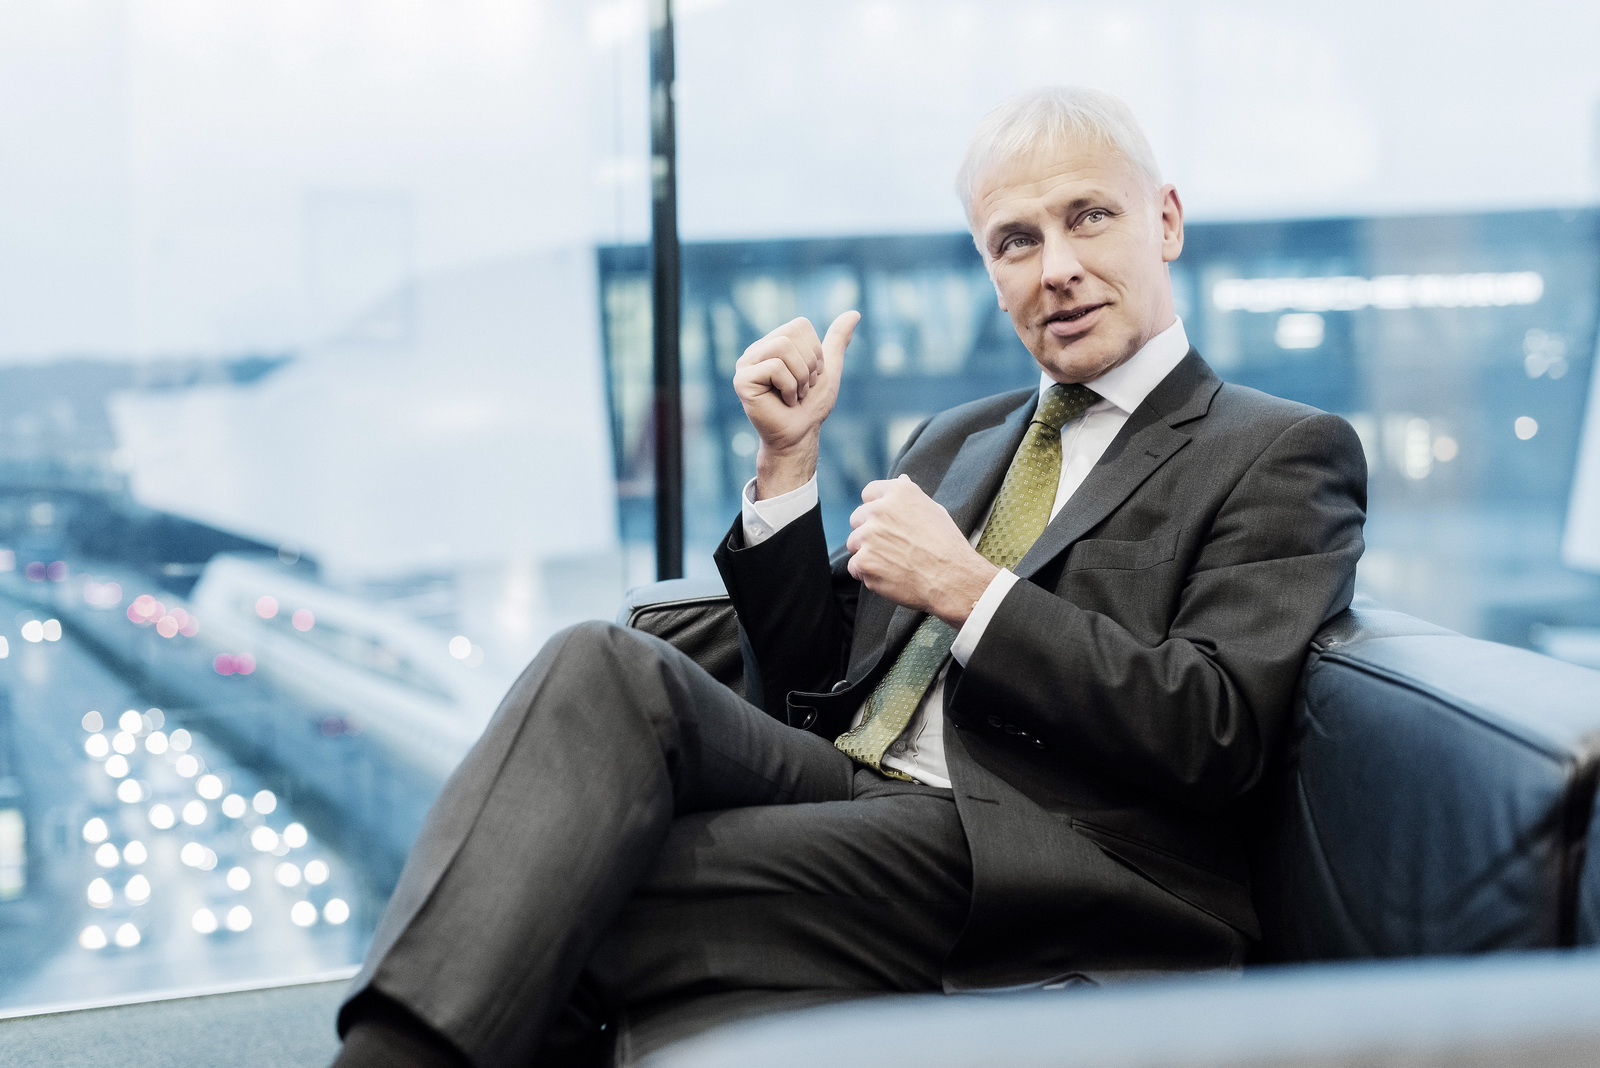 VW CEO Matthias Muller Had No Prior Knowledge Of Dieselgate